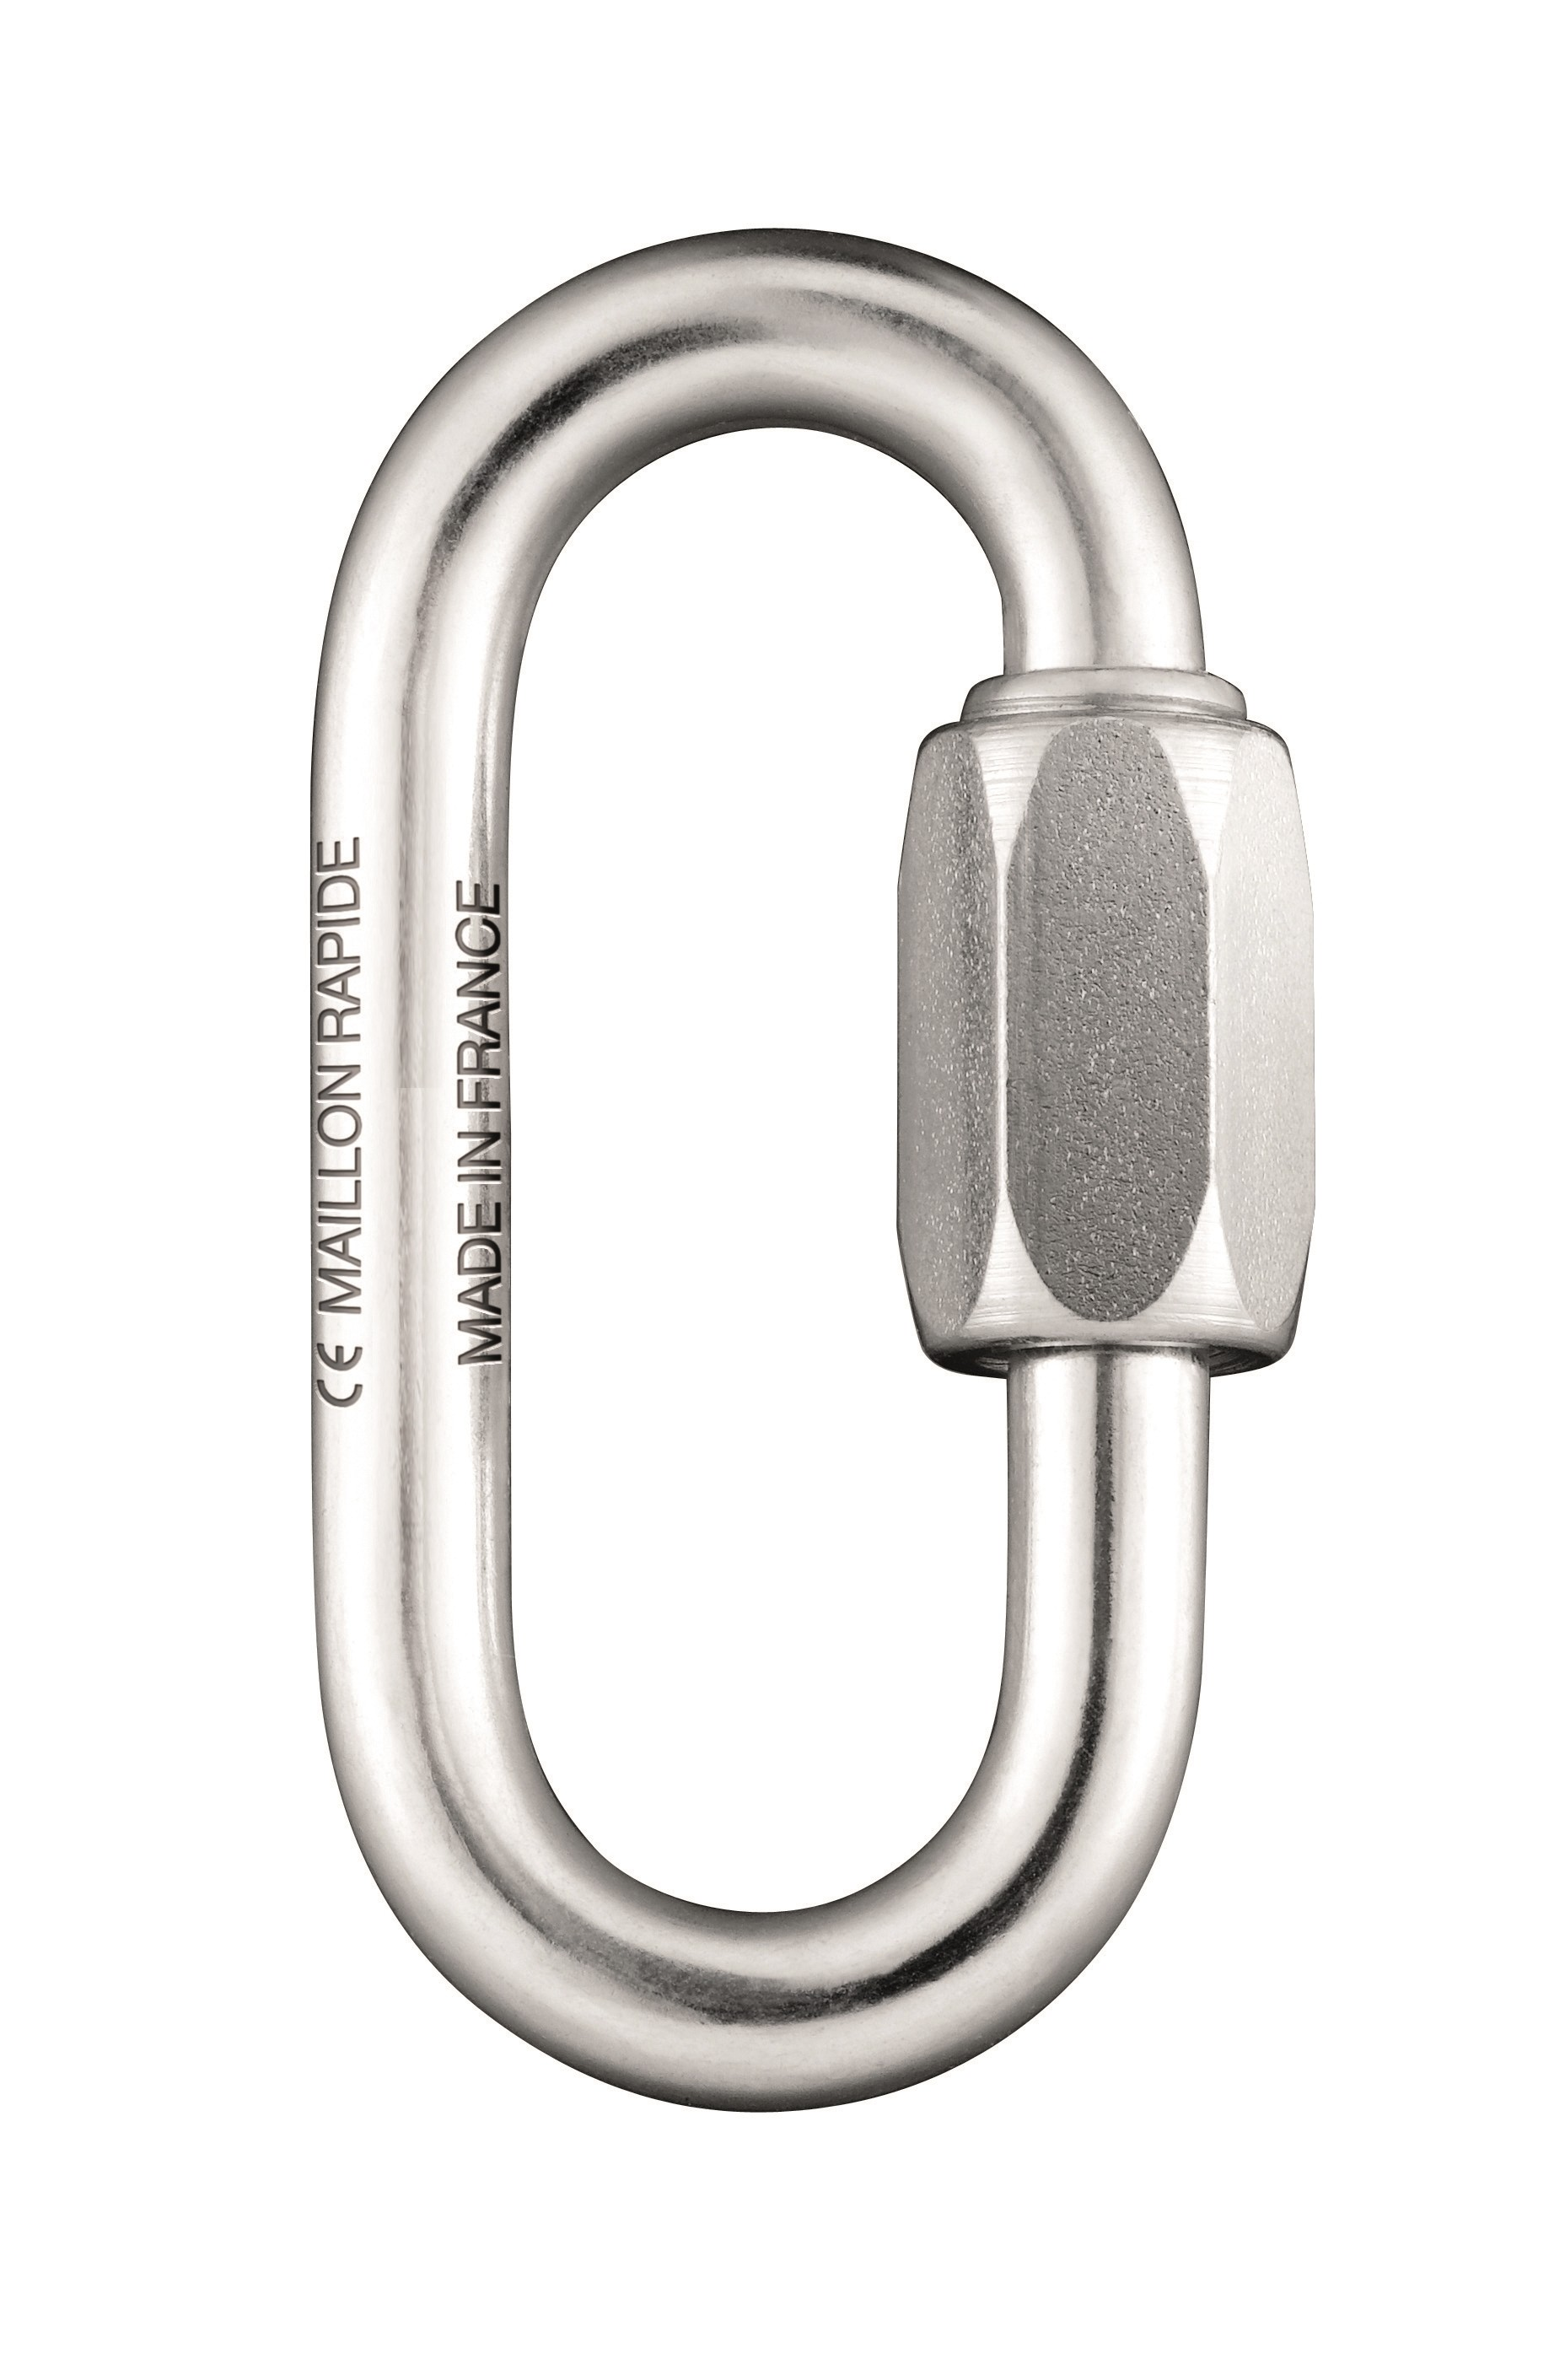 MAILLON Oval 8mm Stainless steel